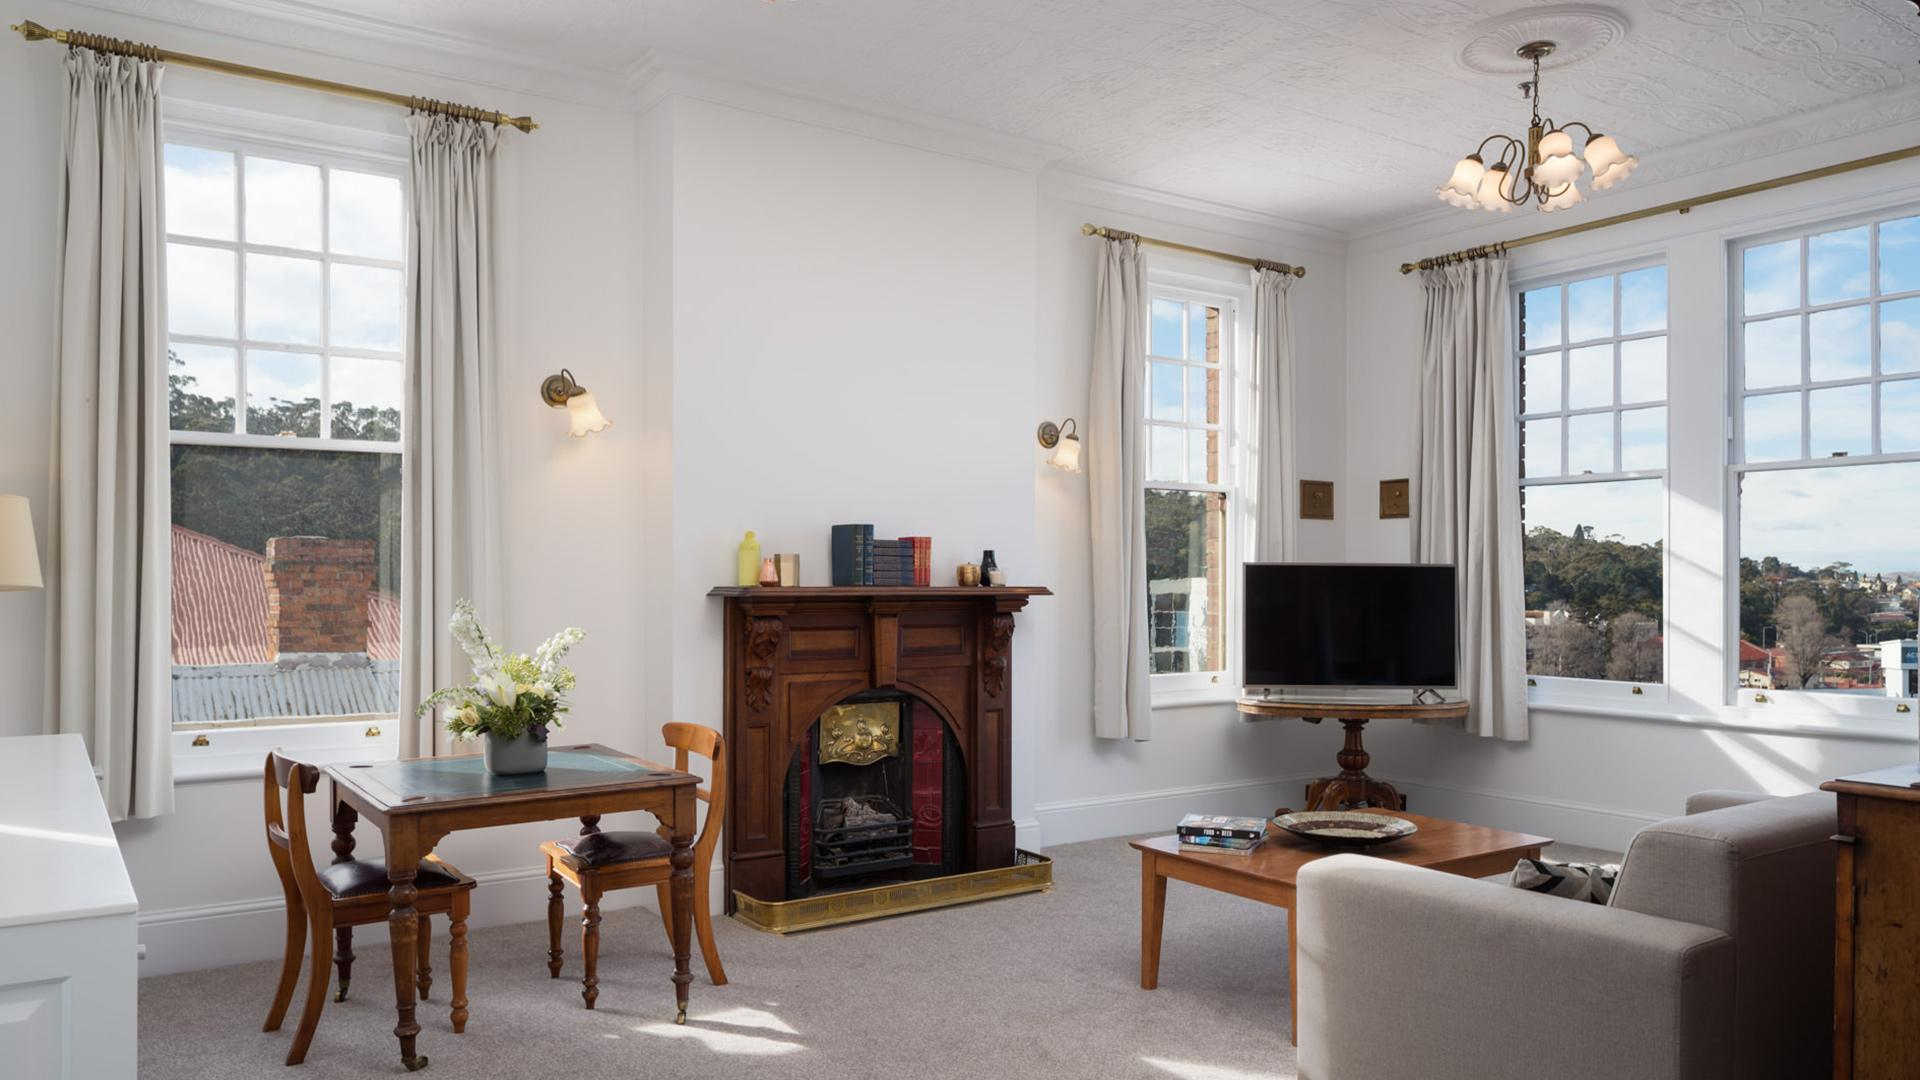 The Manor Suite image 1 at Rydges Hobart by Hobart City Council, Tasmania, Australia